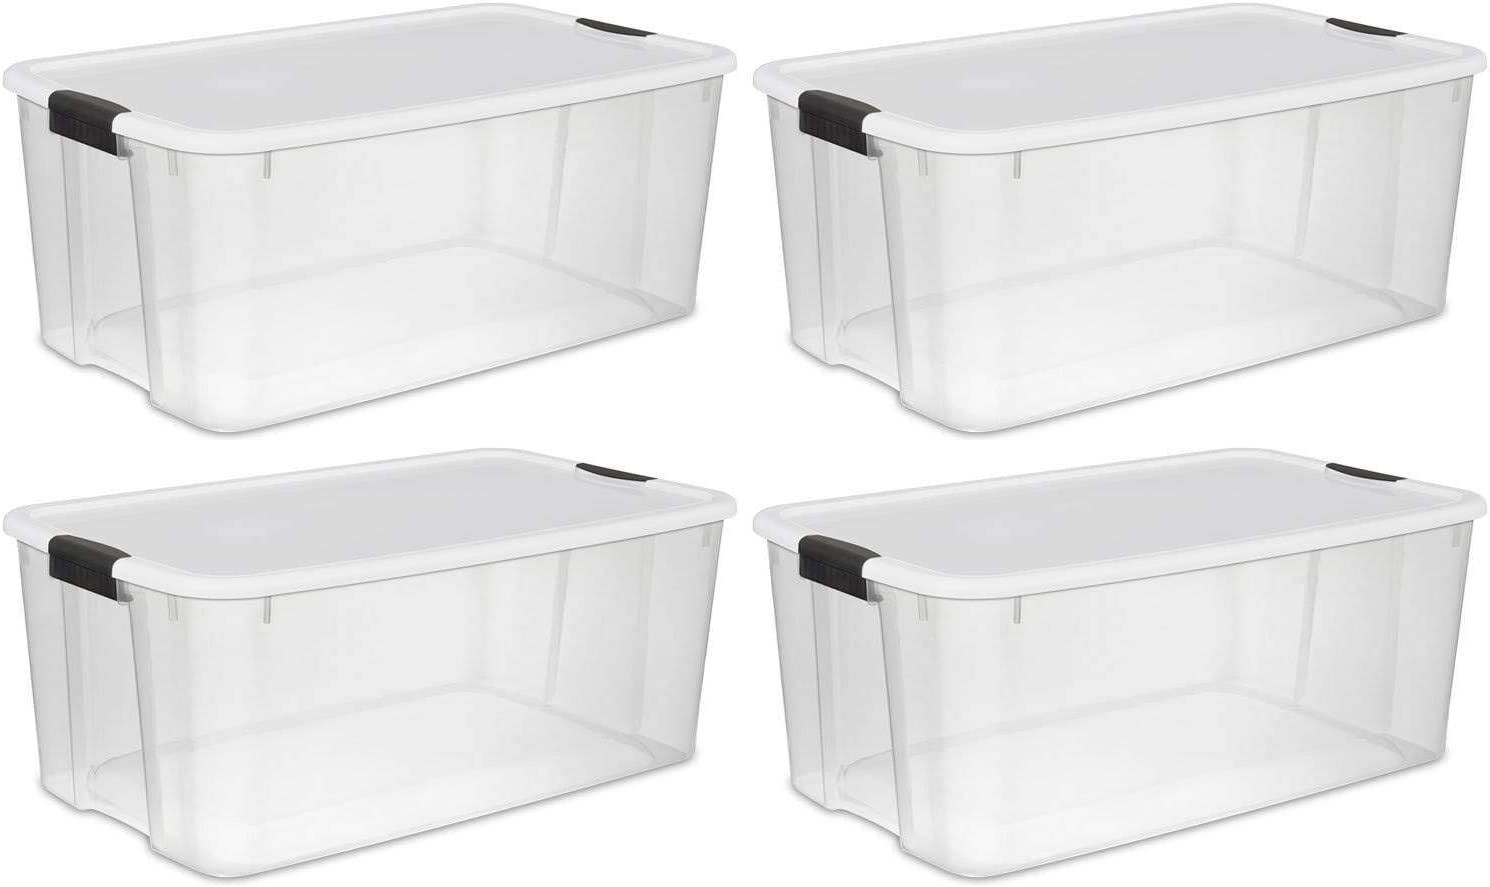 Sterilite 116 Quart Ultra Clear Plastic Storage Tote Container with Latching Lid (4 Pack)